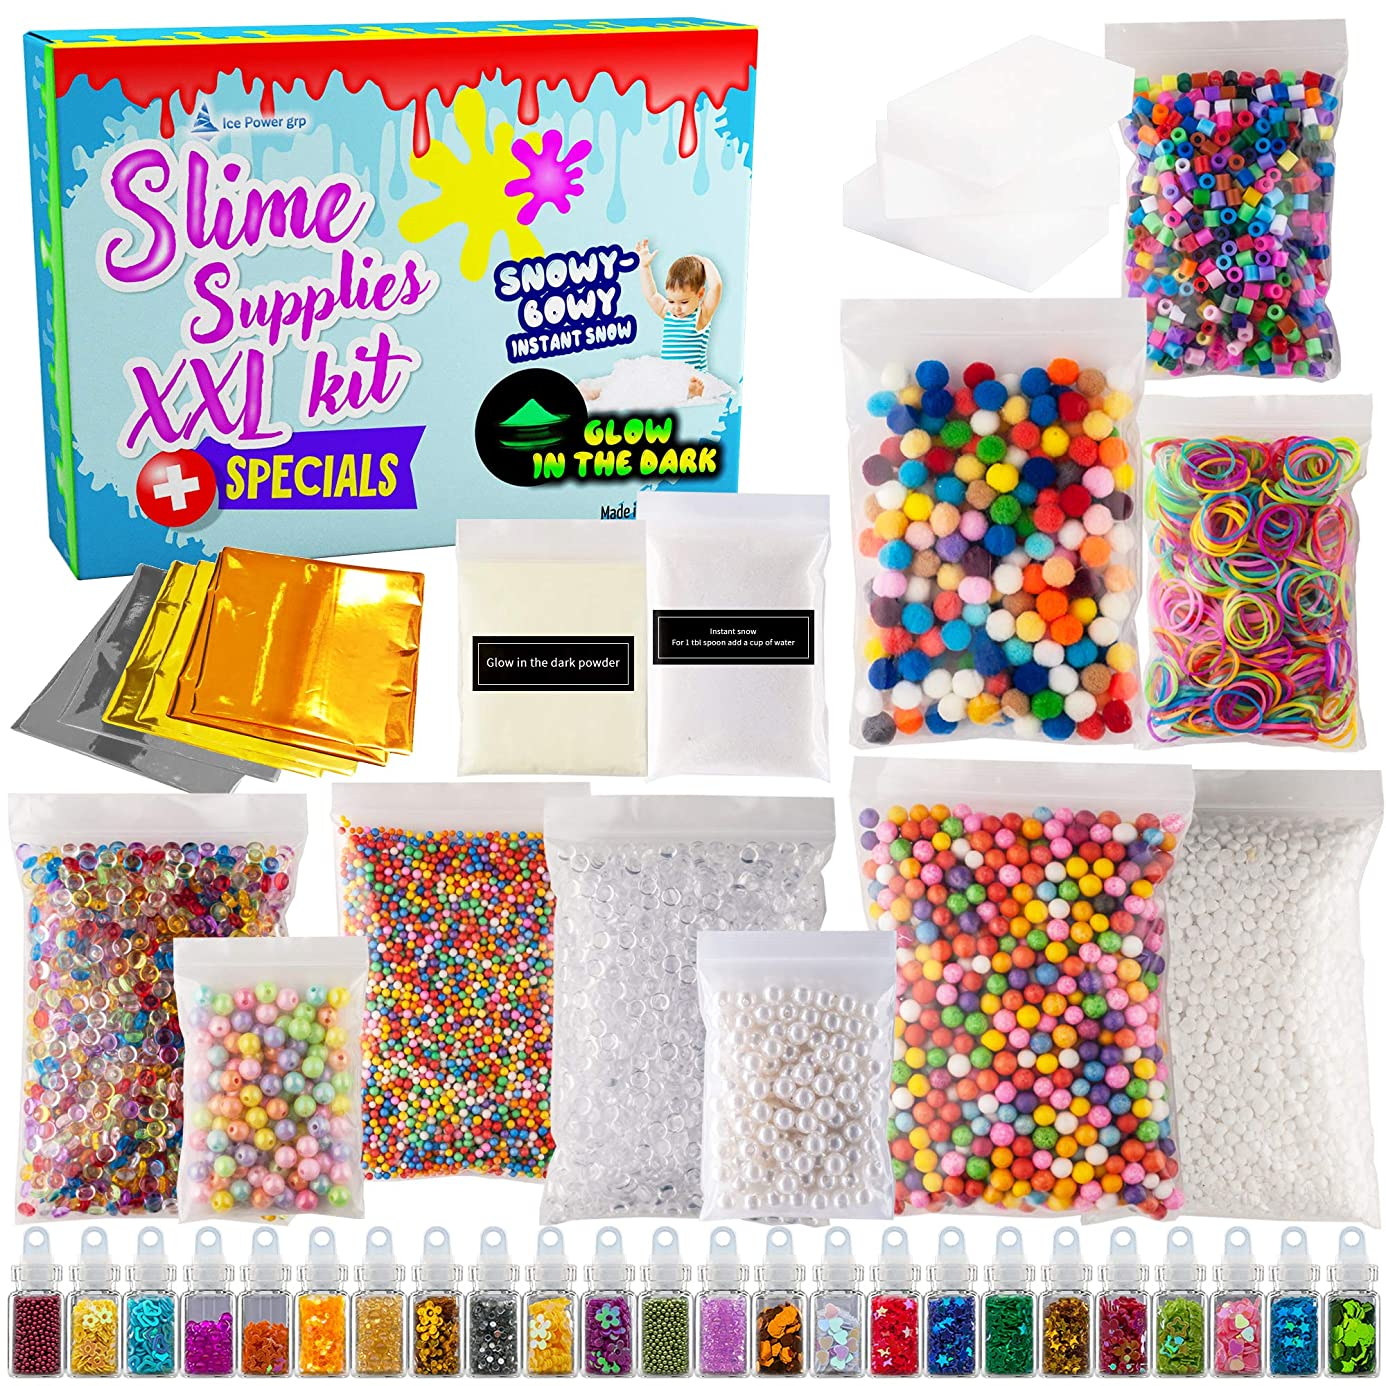 Slime supplies DIY XXL kit for boys and girls, big size 45 pack stuff and accesories to make slime party, add ins ingridients with fishbowl and foam beads, glitter jars, instant snow, glow in the dark cur7946790